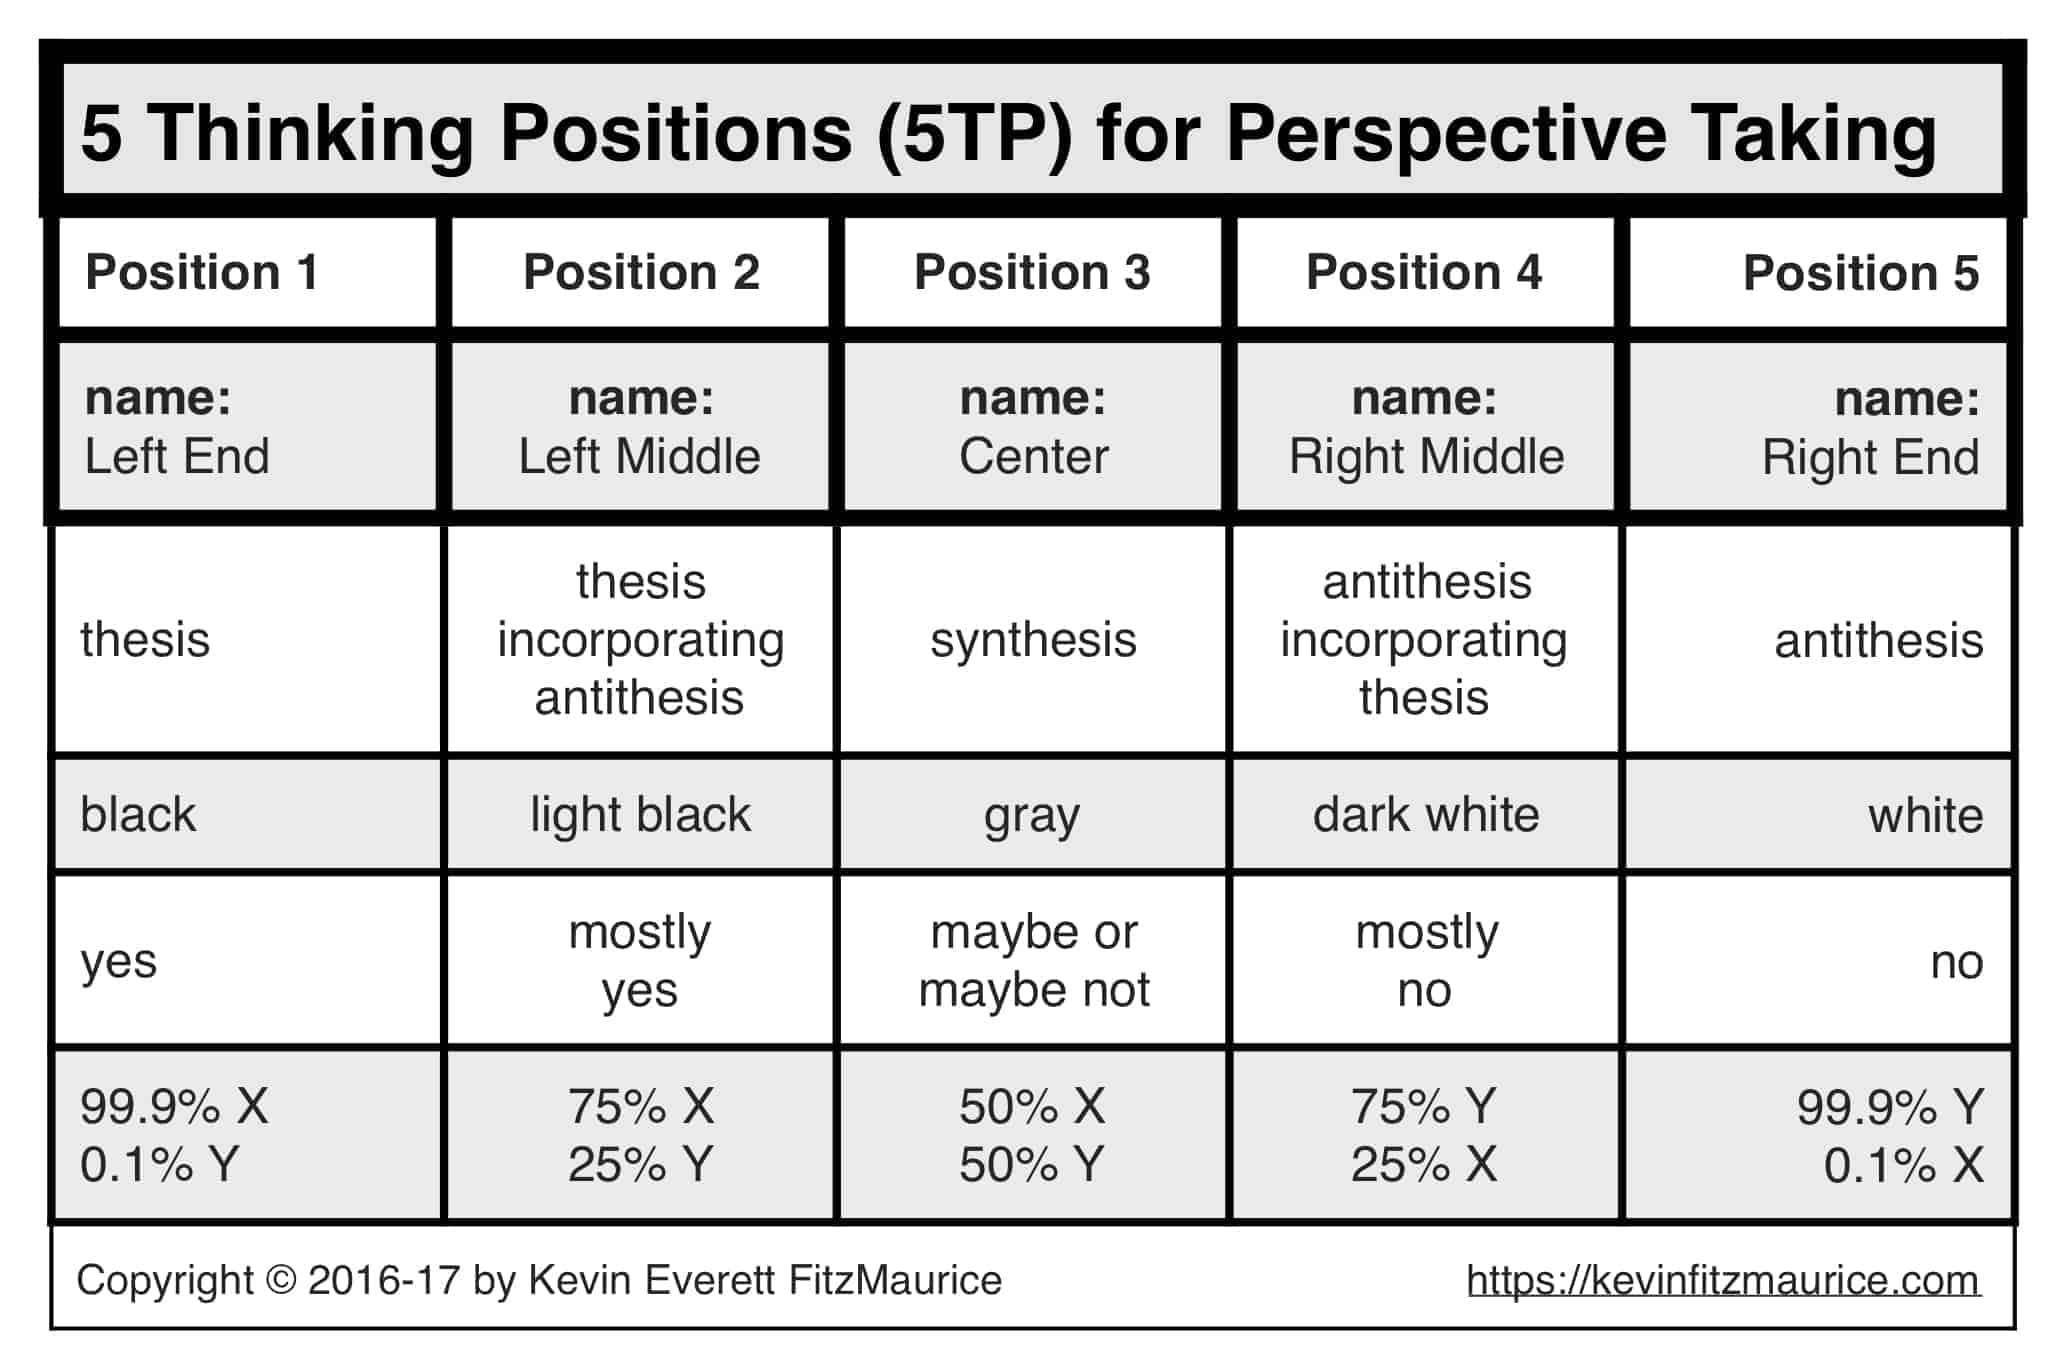 5 Thinking Positions: 5TP